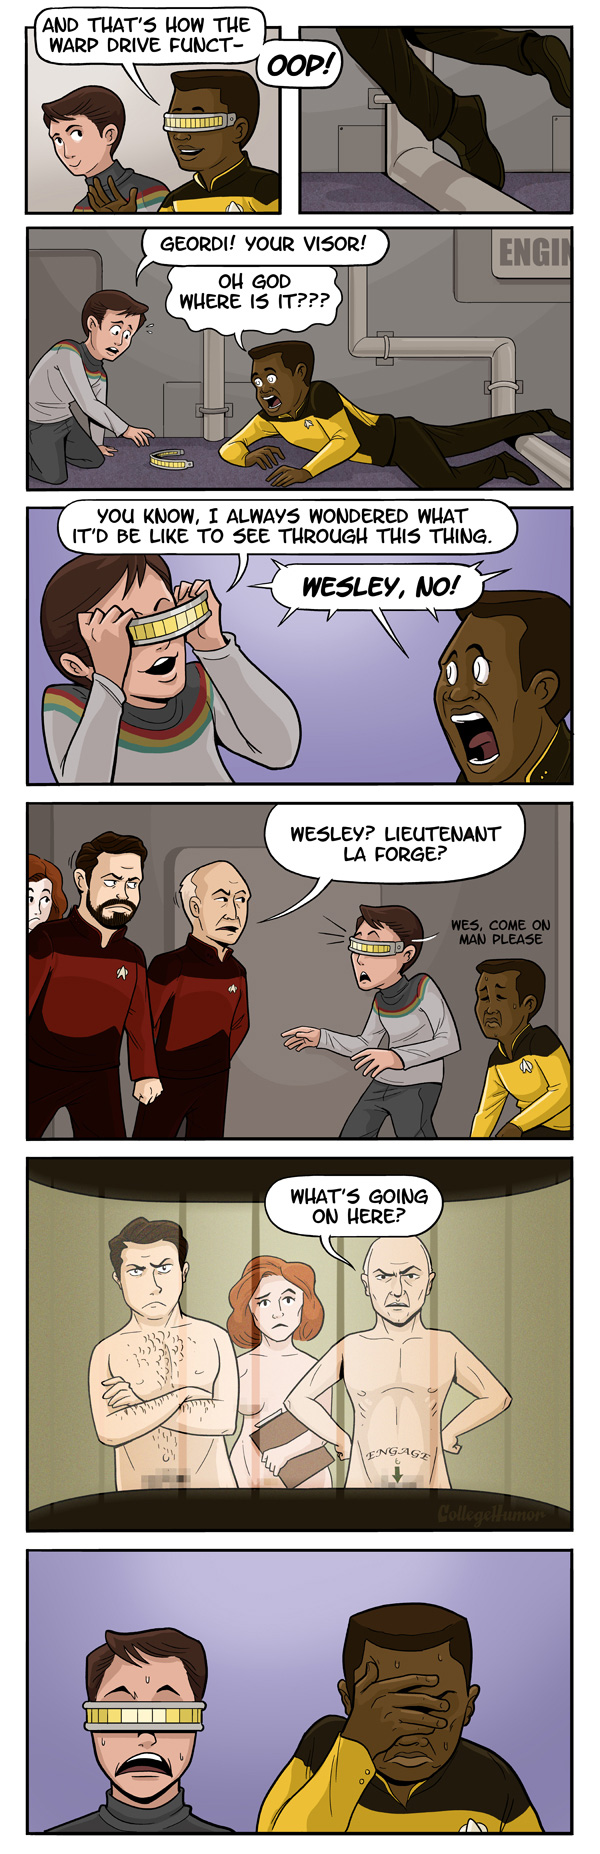 Star Trek Geordi LaForge webcomic